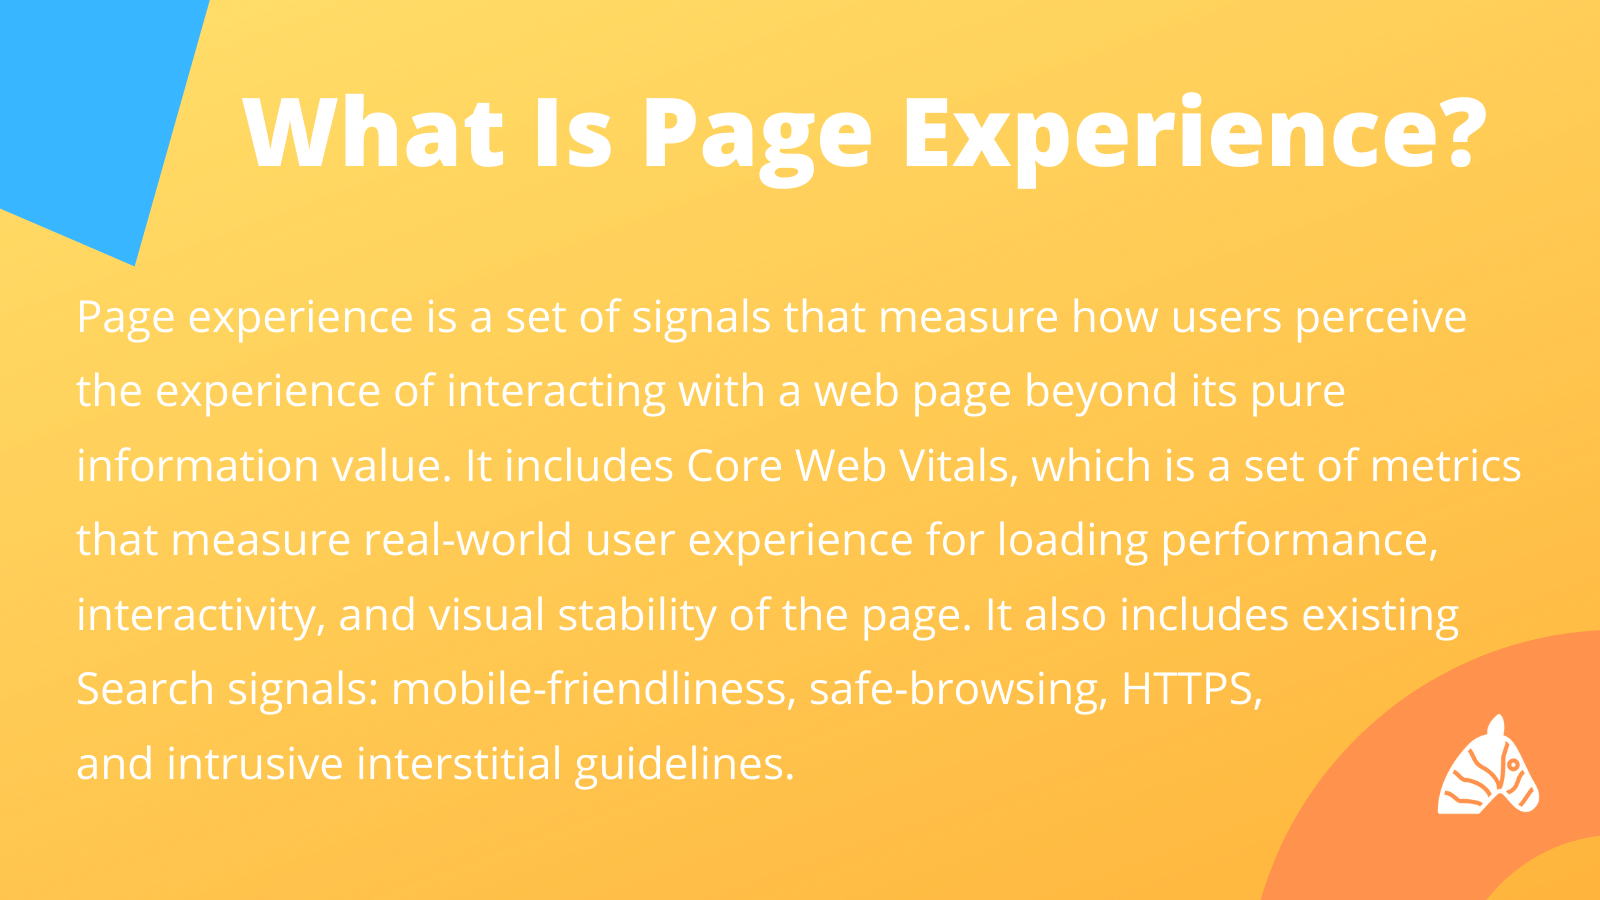 What is Google Page Experience?